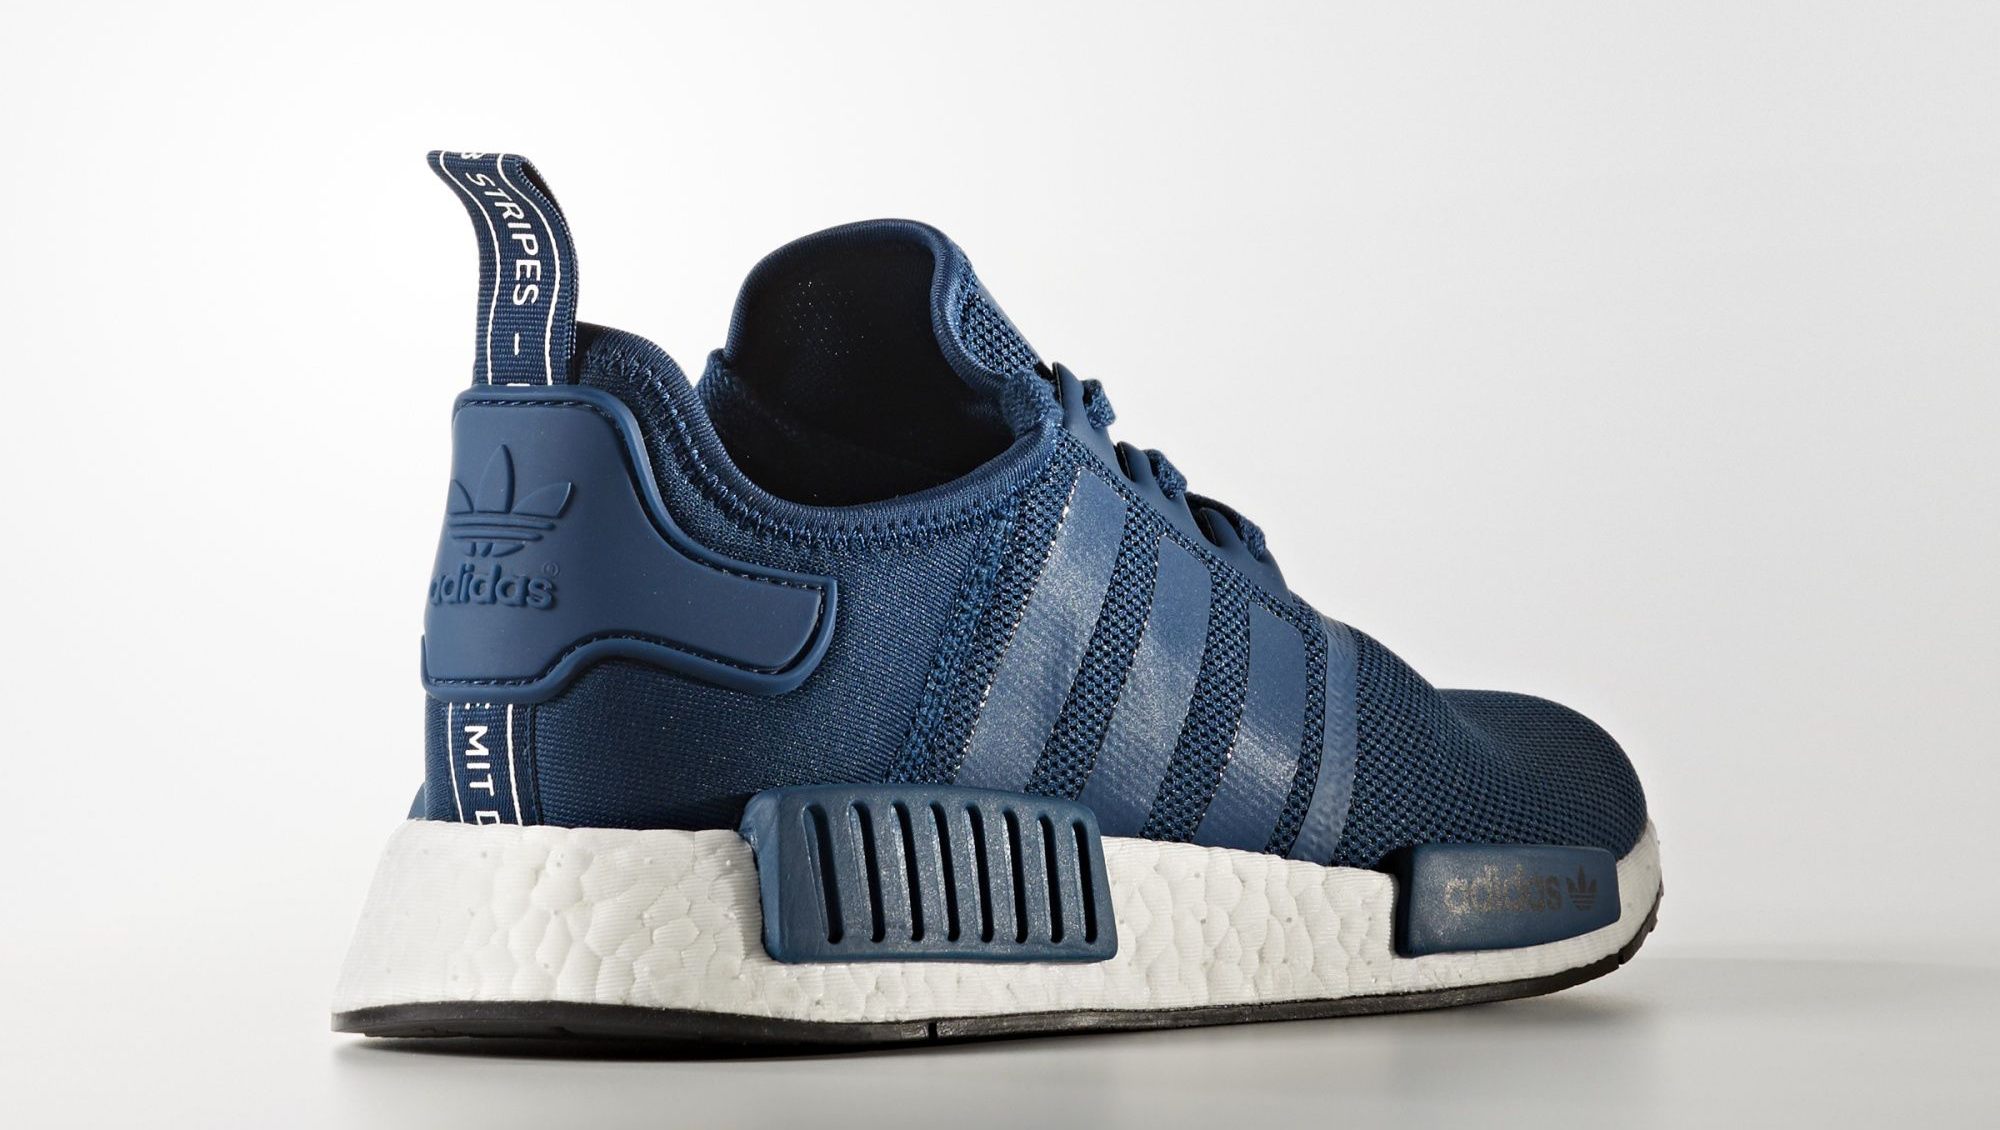 adidas nmd r1 blue night aio bot releases. Black Bedroom Furniture Sets. Home Design Ideas